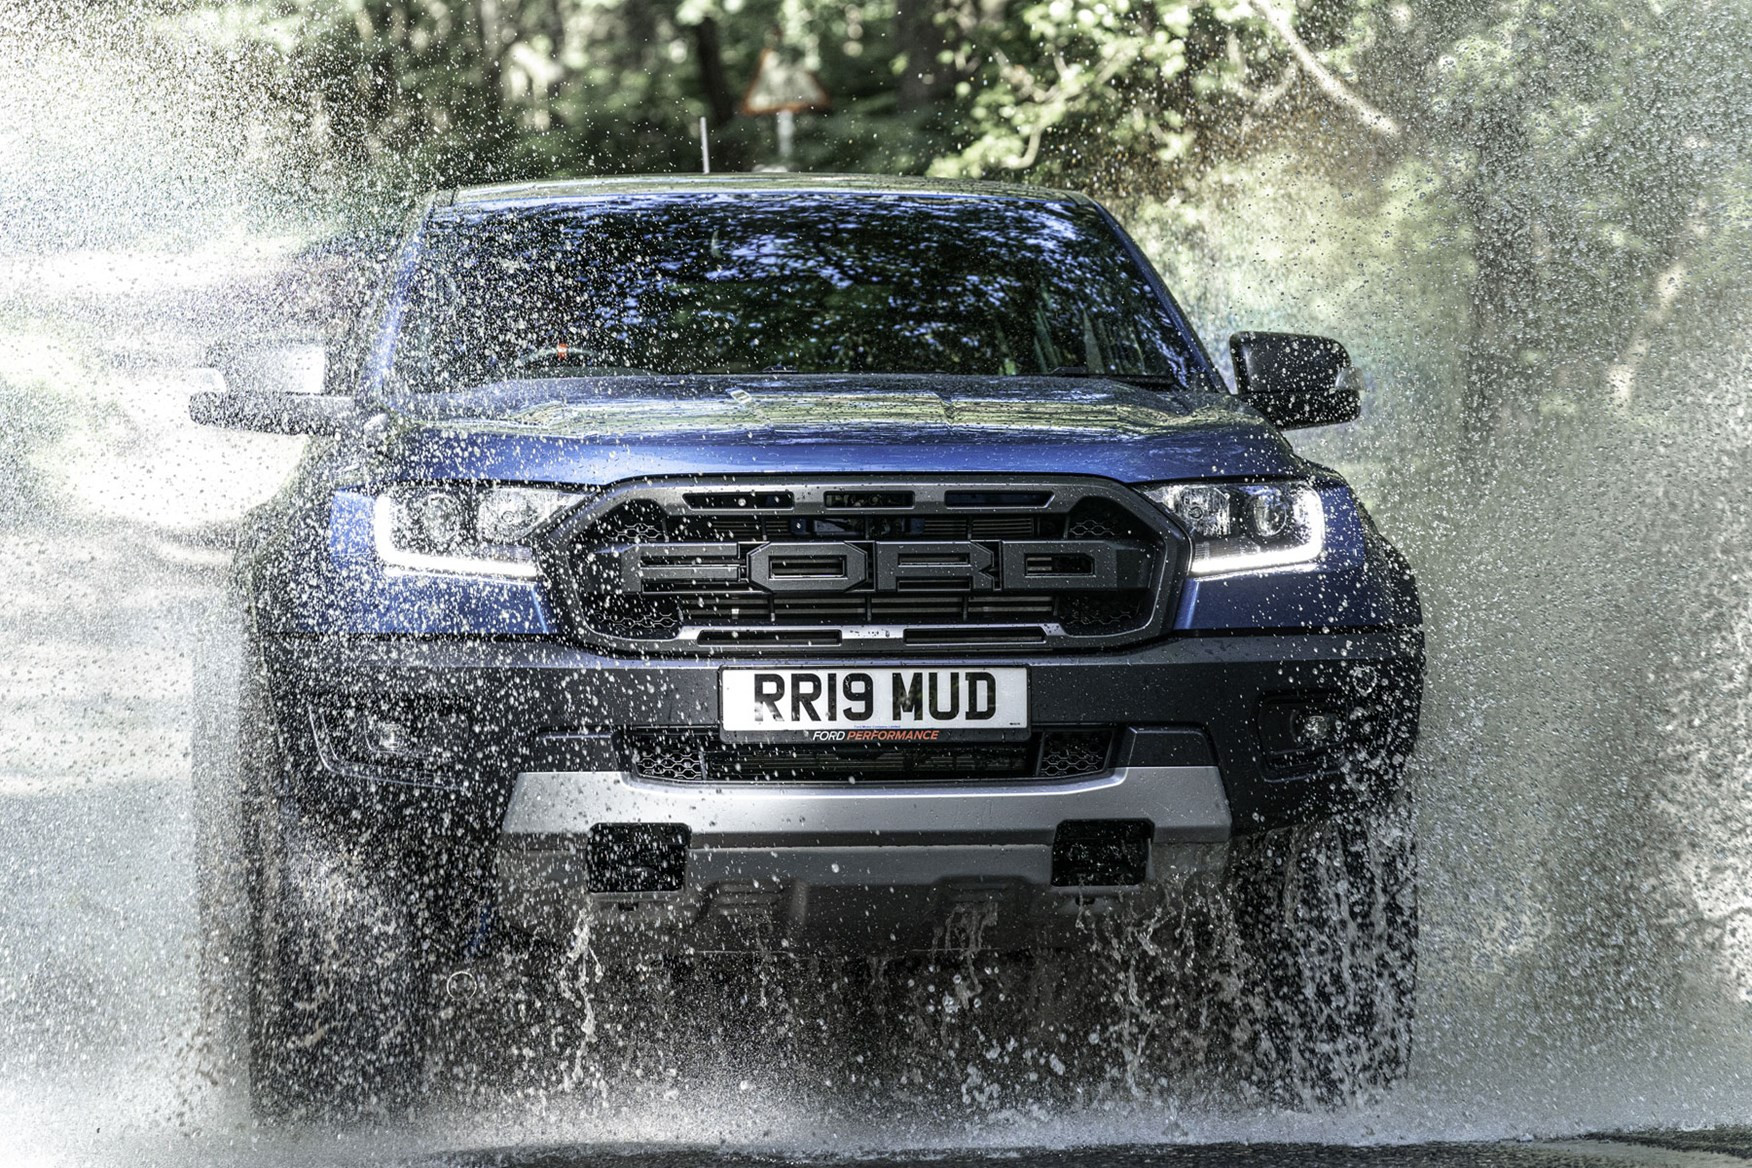 Ford Ranger Raptor review - dead-on front view, splashing through water 2020